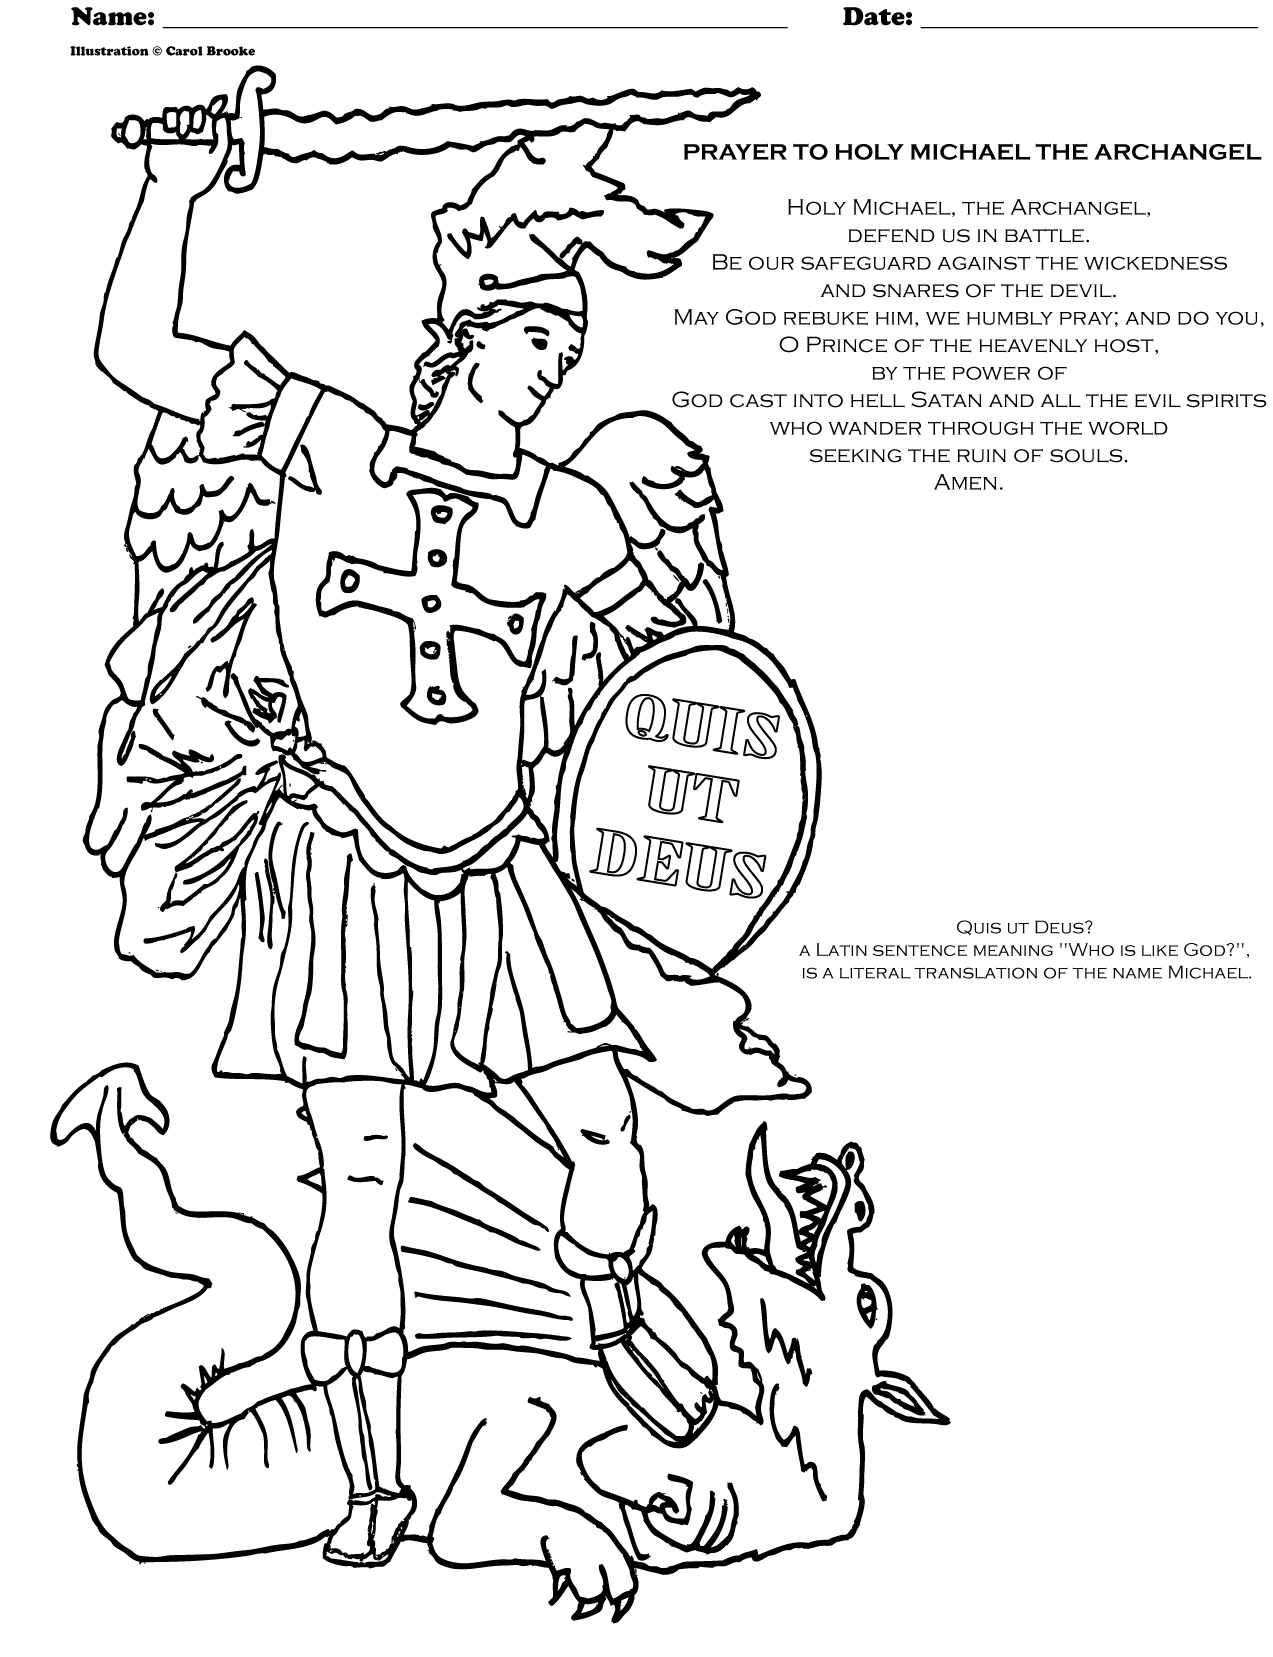 Catholic prayer coloring pages coloring pages for Prayer coloring pages